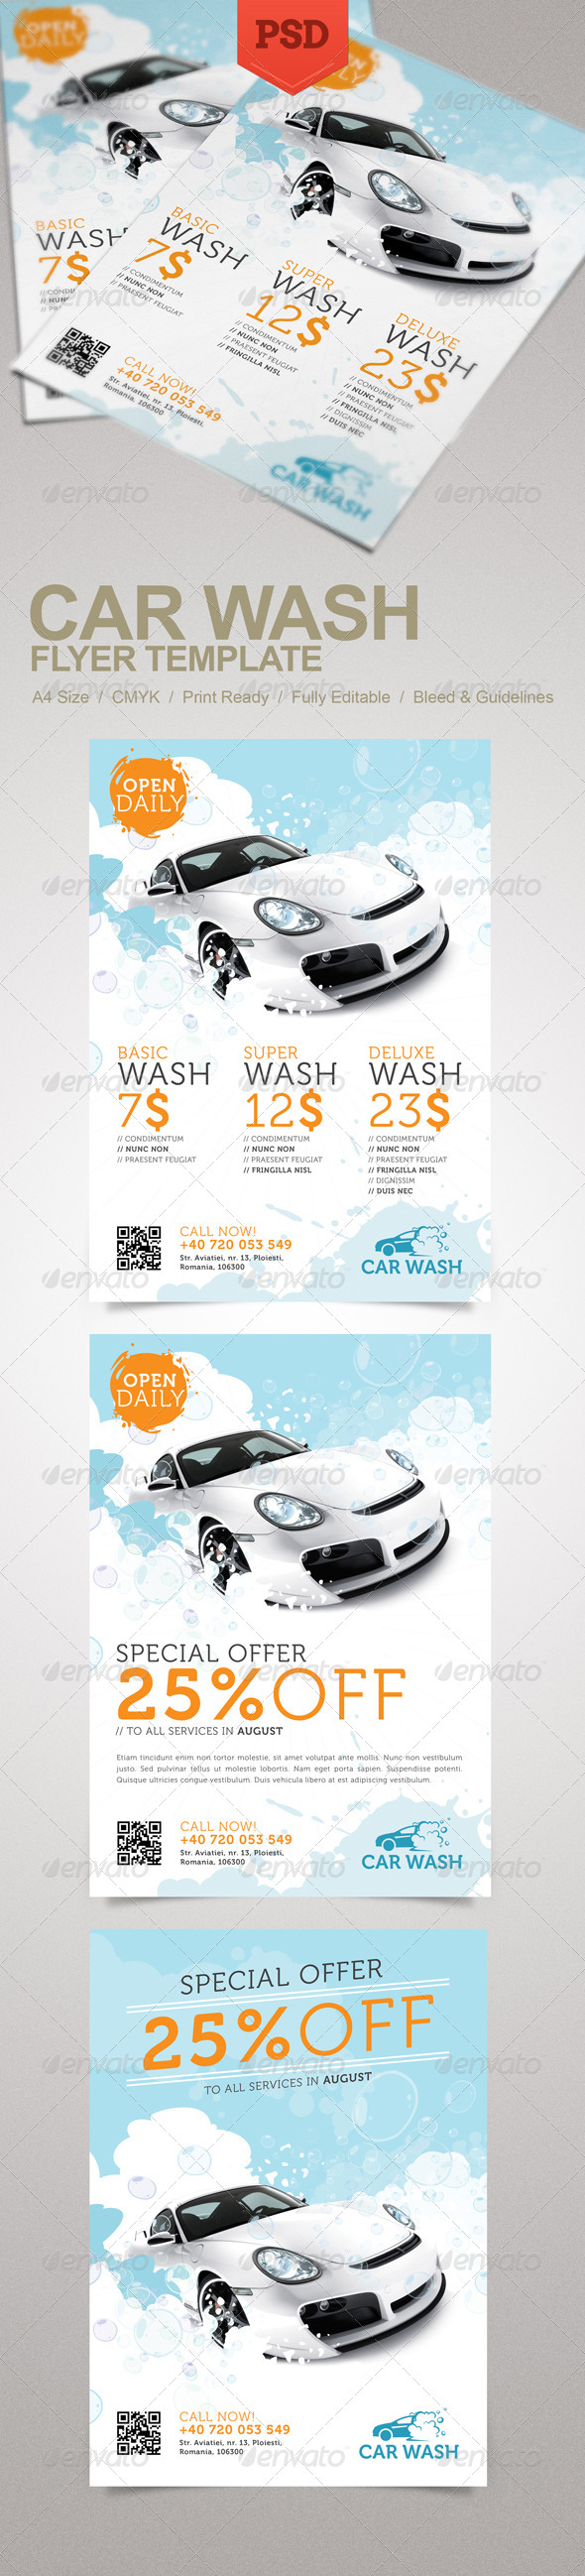 Car wash flyer psd for automotive flyers hot girls wallpaper for Free car wash ticket template